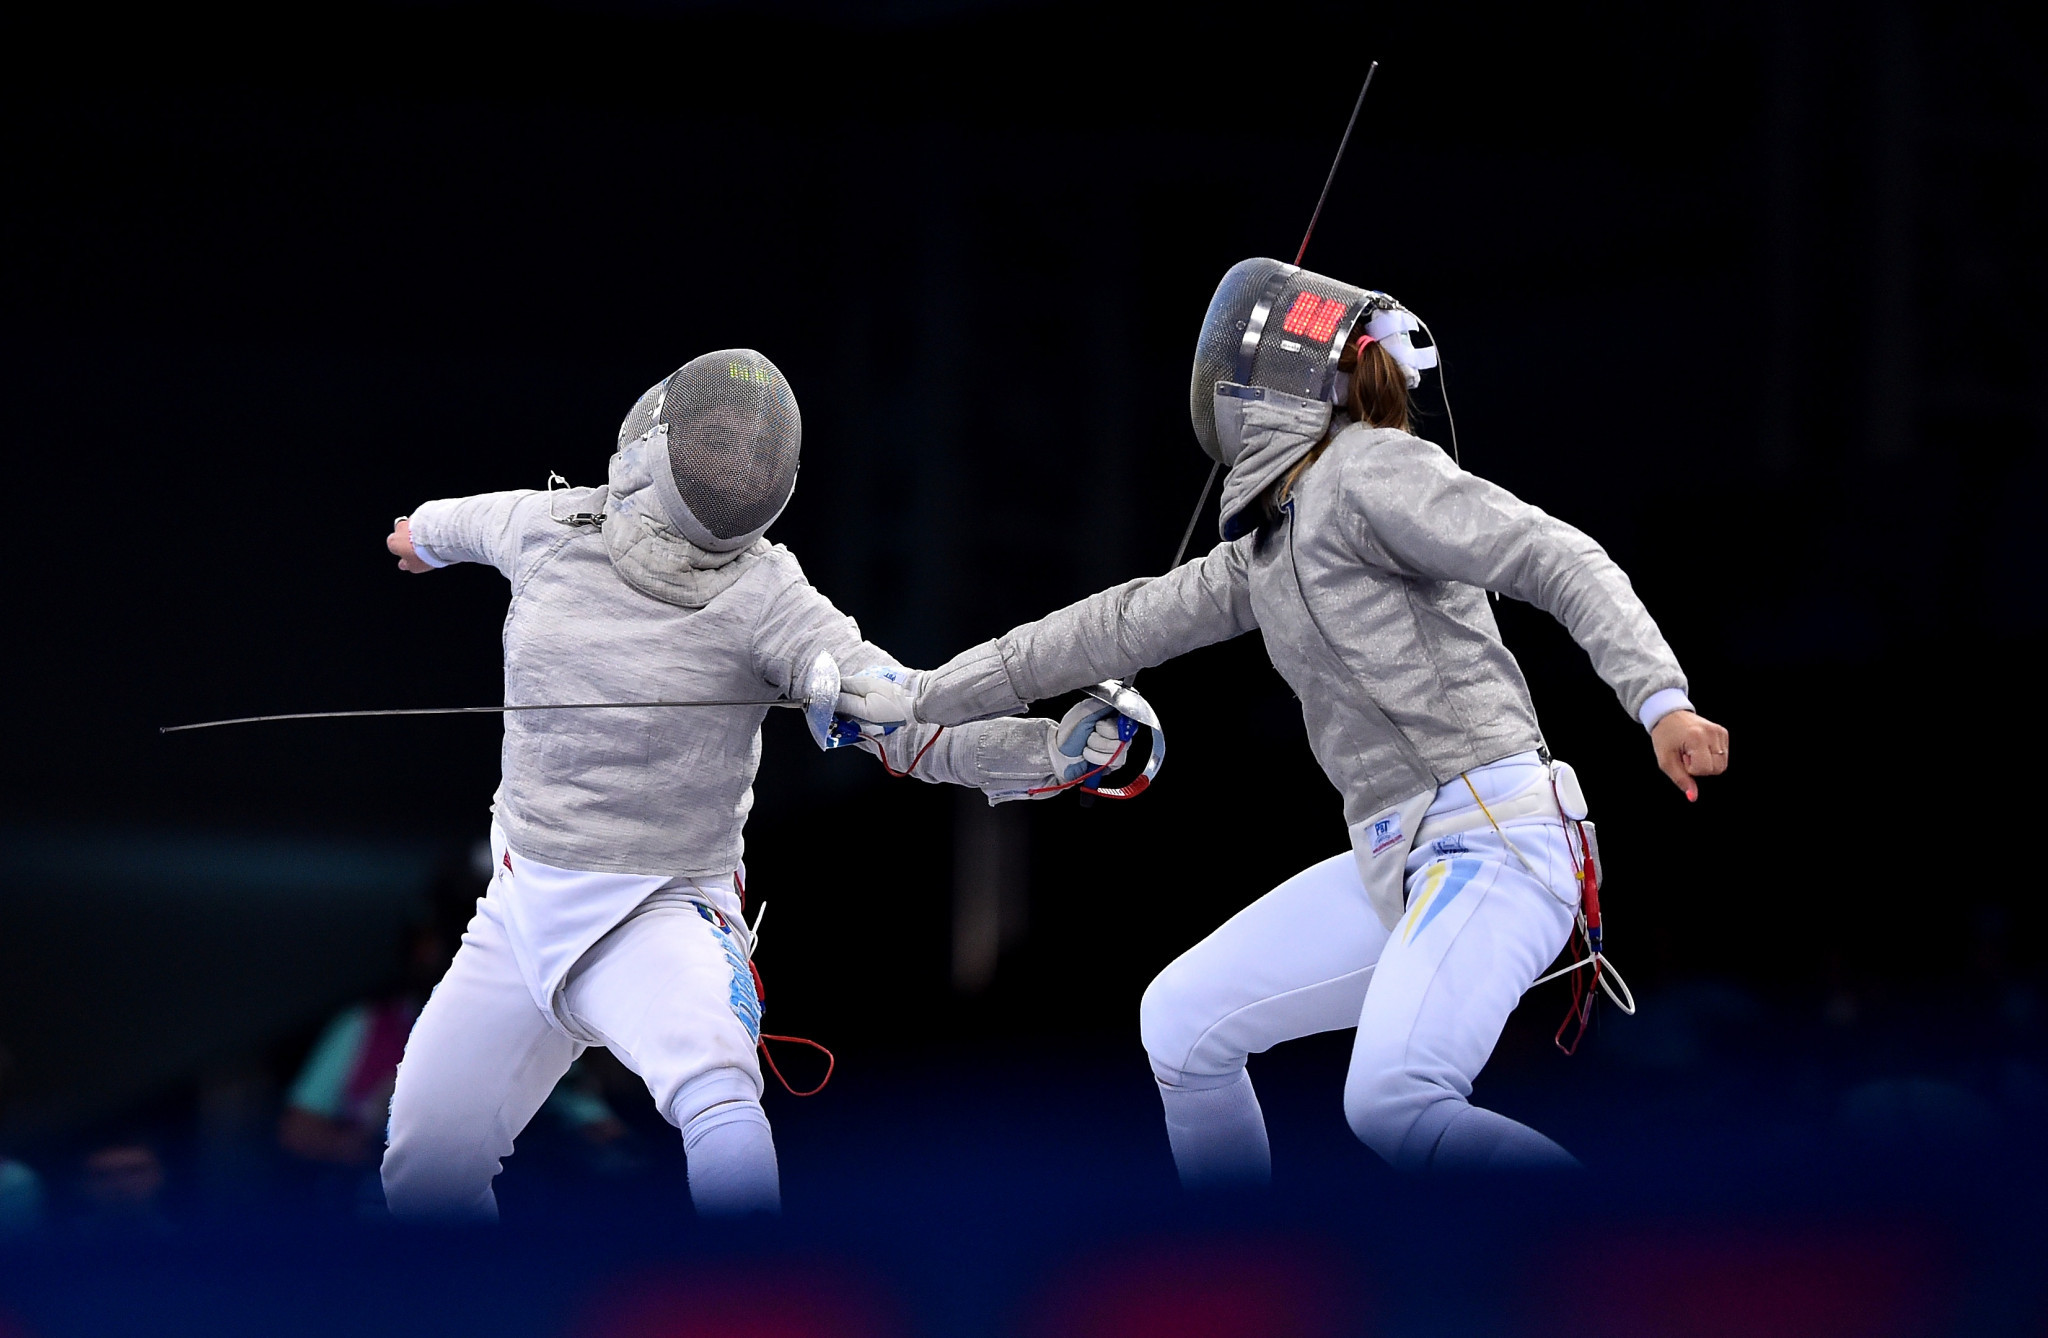 Martina Criscio sealed the individual honours at the women's Sabre World Cup in Baltimore ©Getty Images